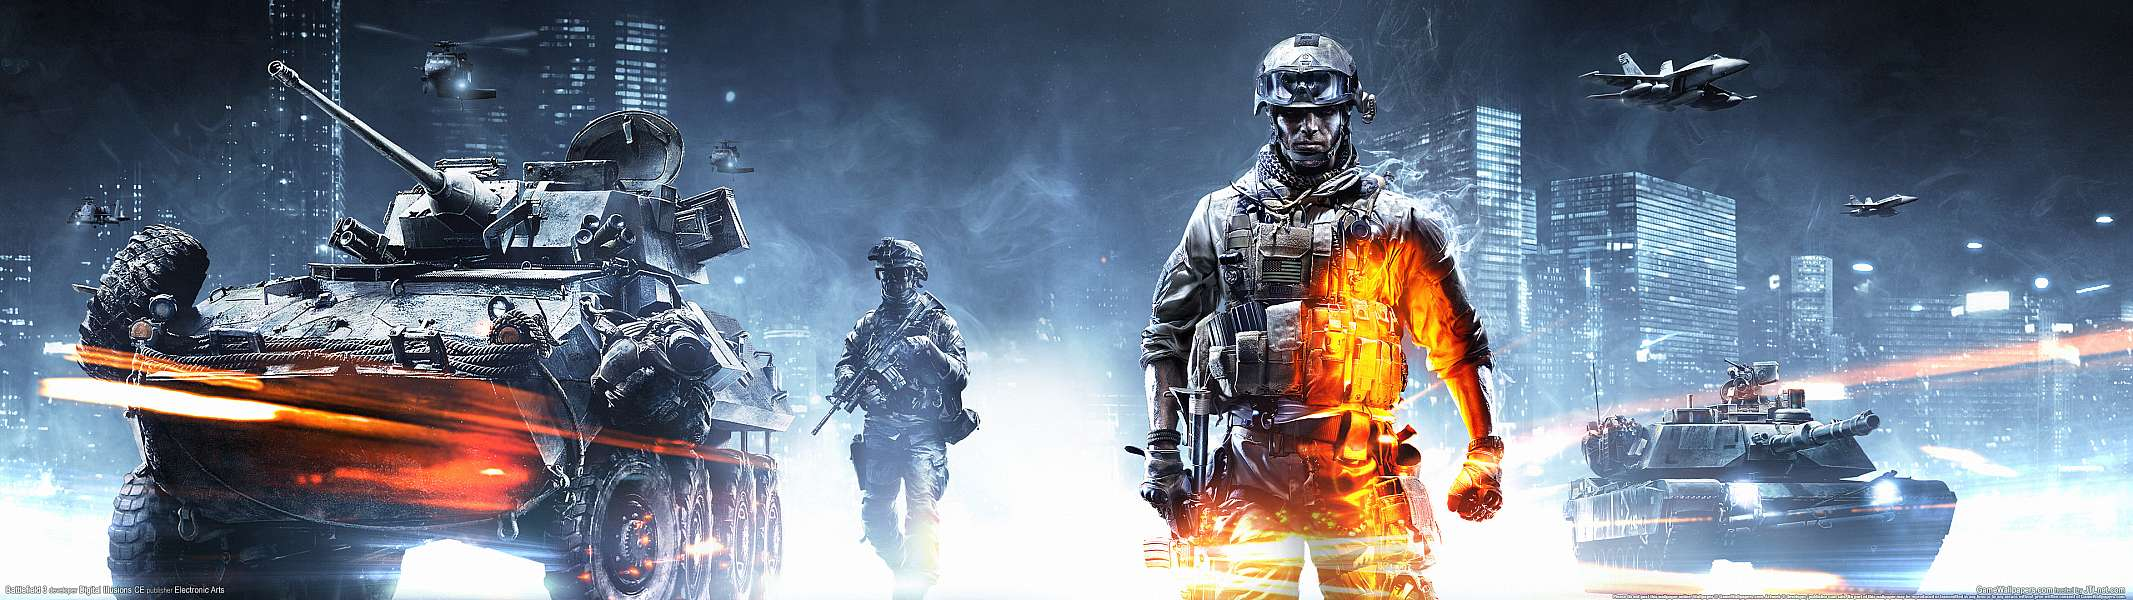 Battlefield 3 dual screen wallpaper or background